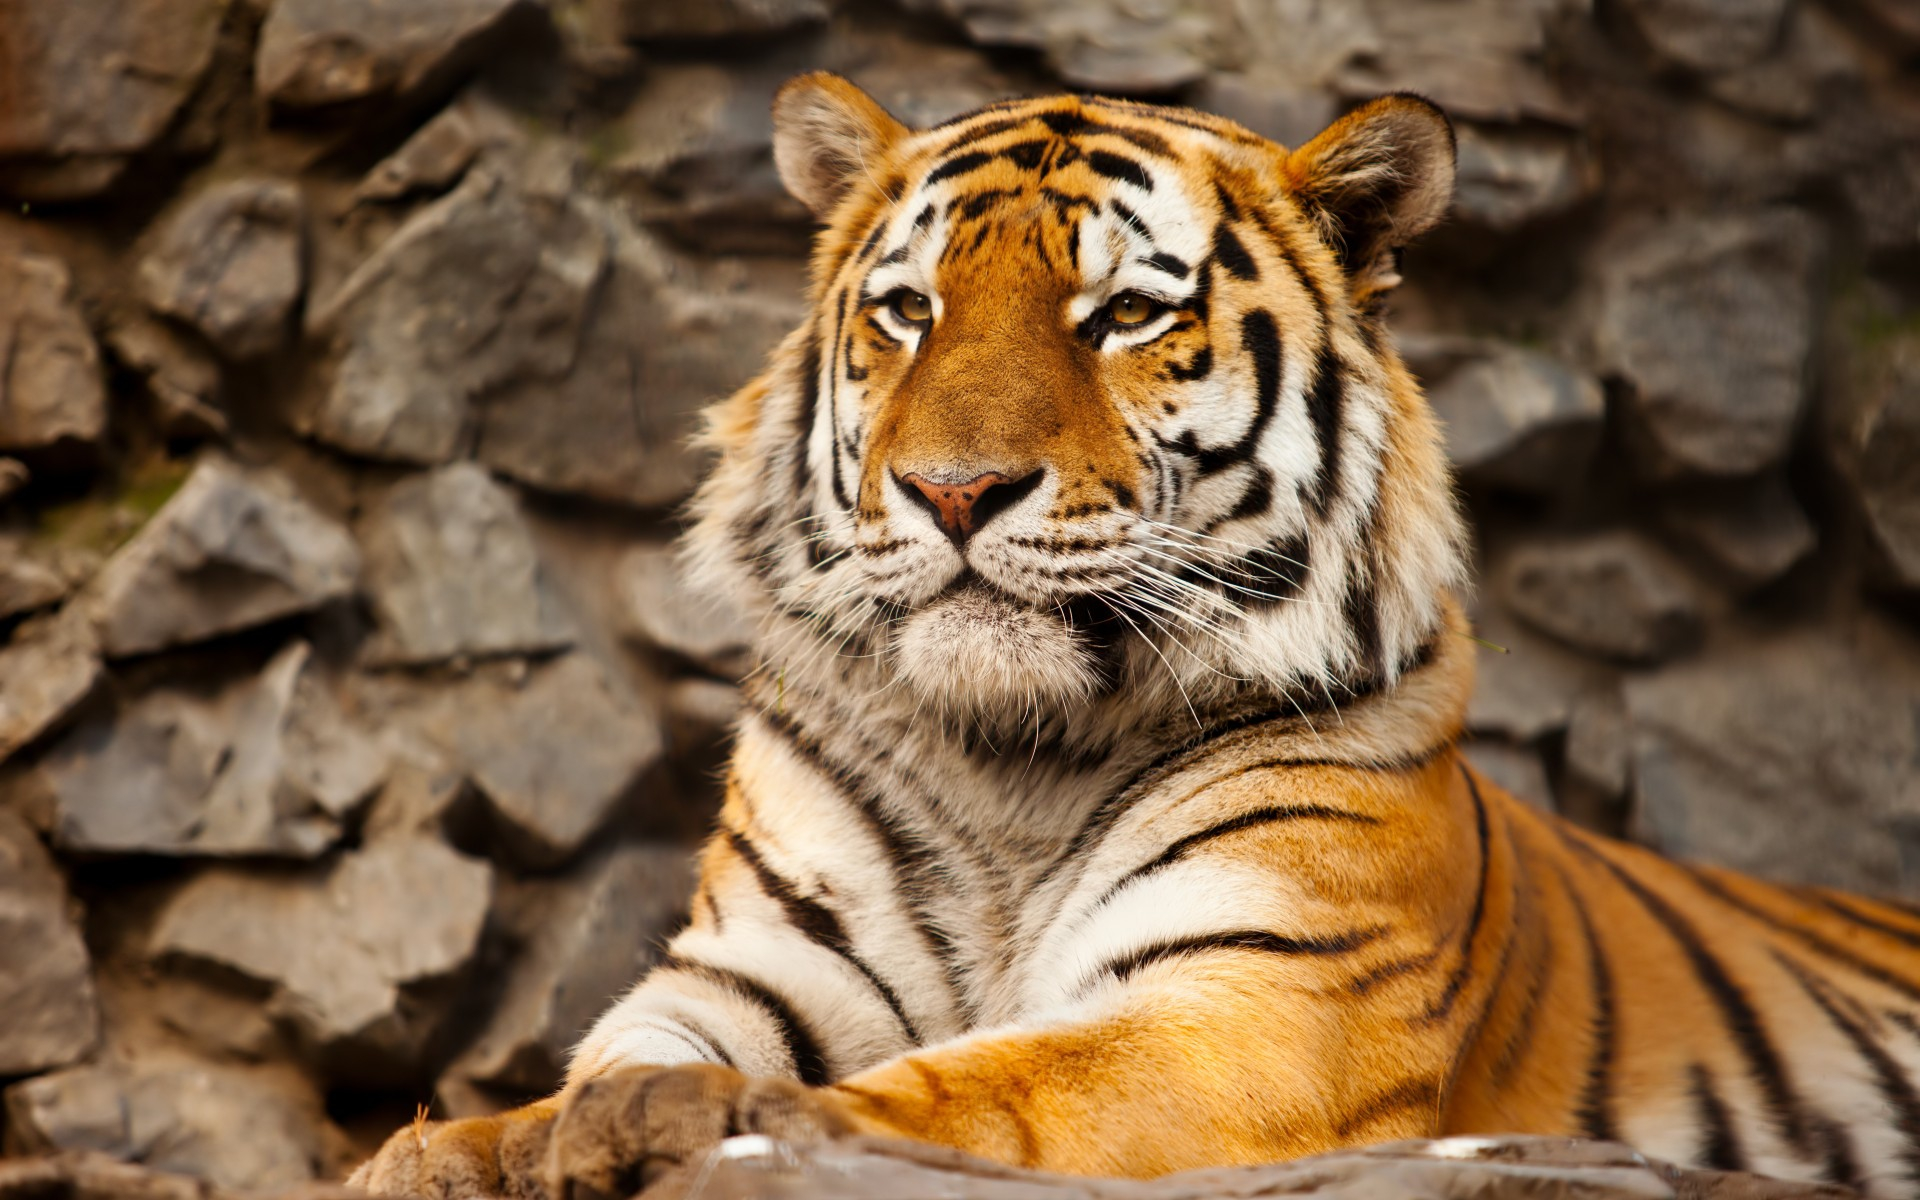 Cute Animal Wallpapers High Resolution 4k Tigris Wallpapers High Quality Download Free